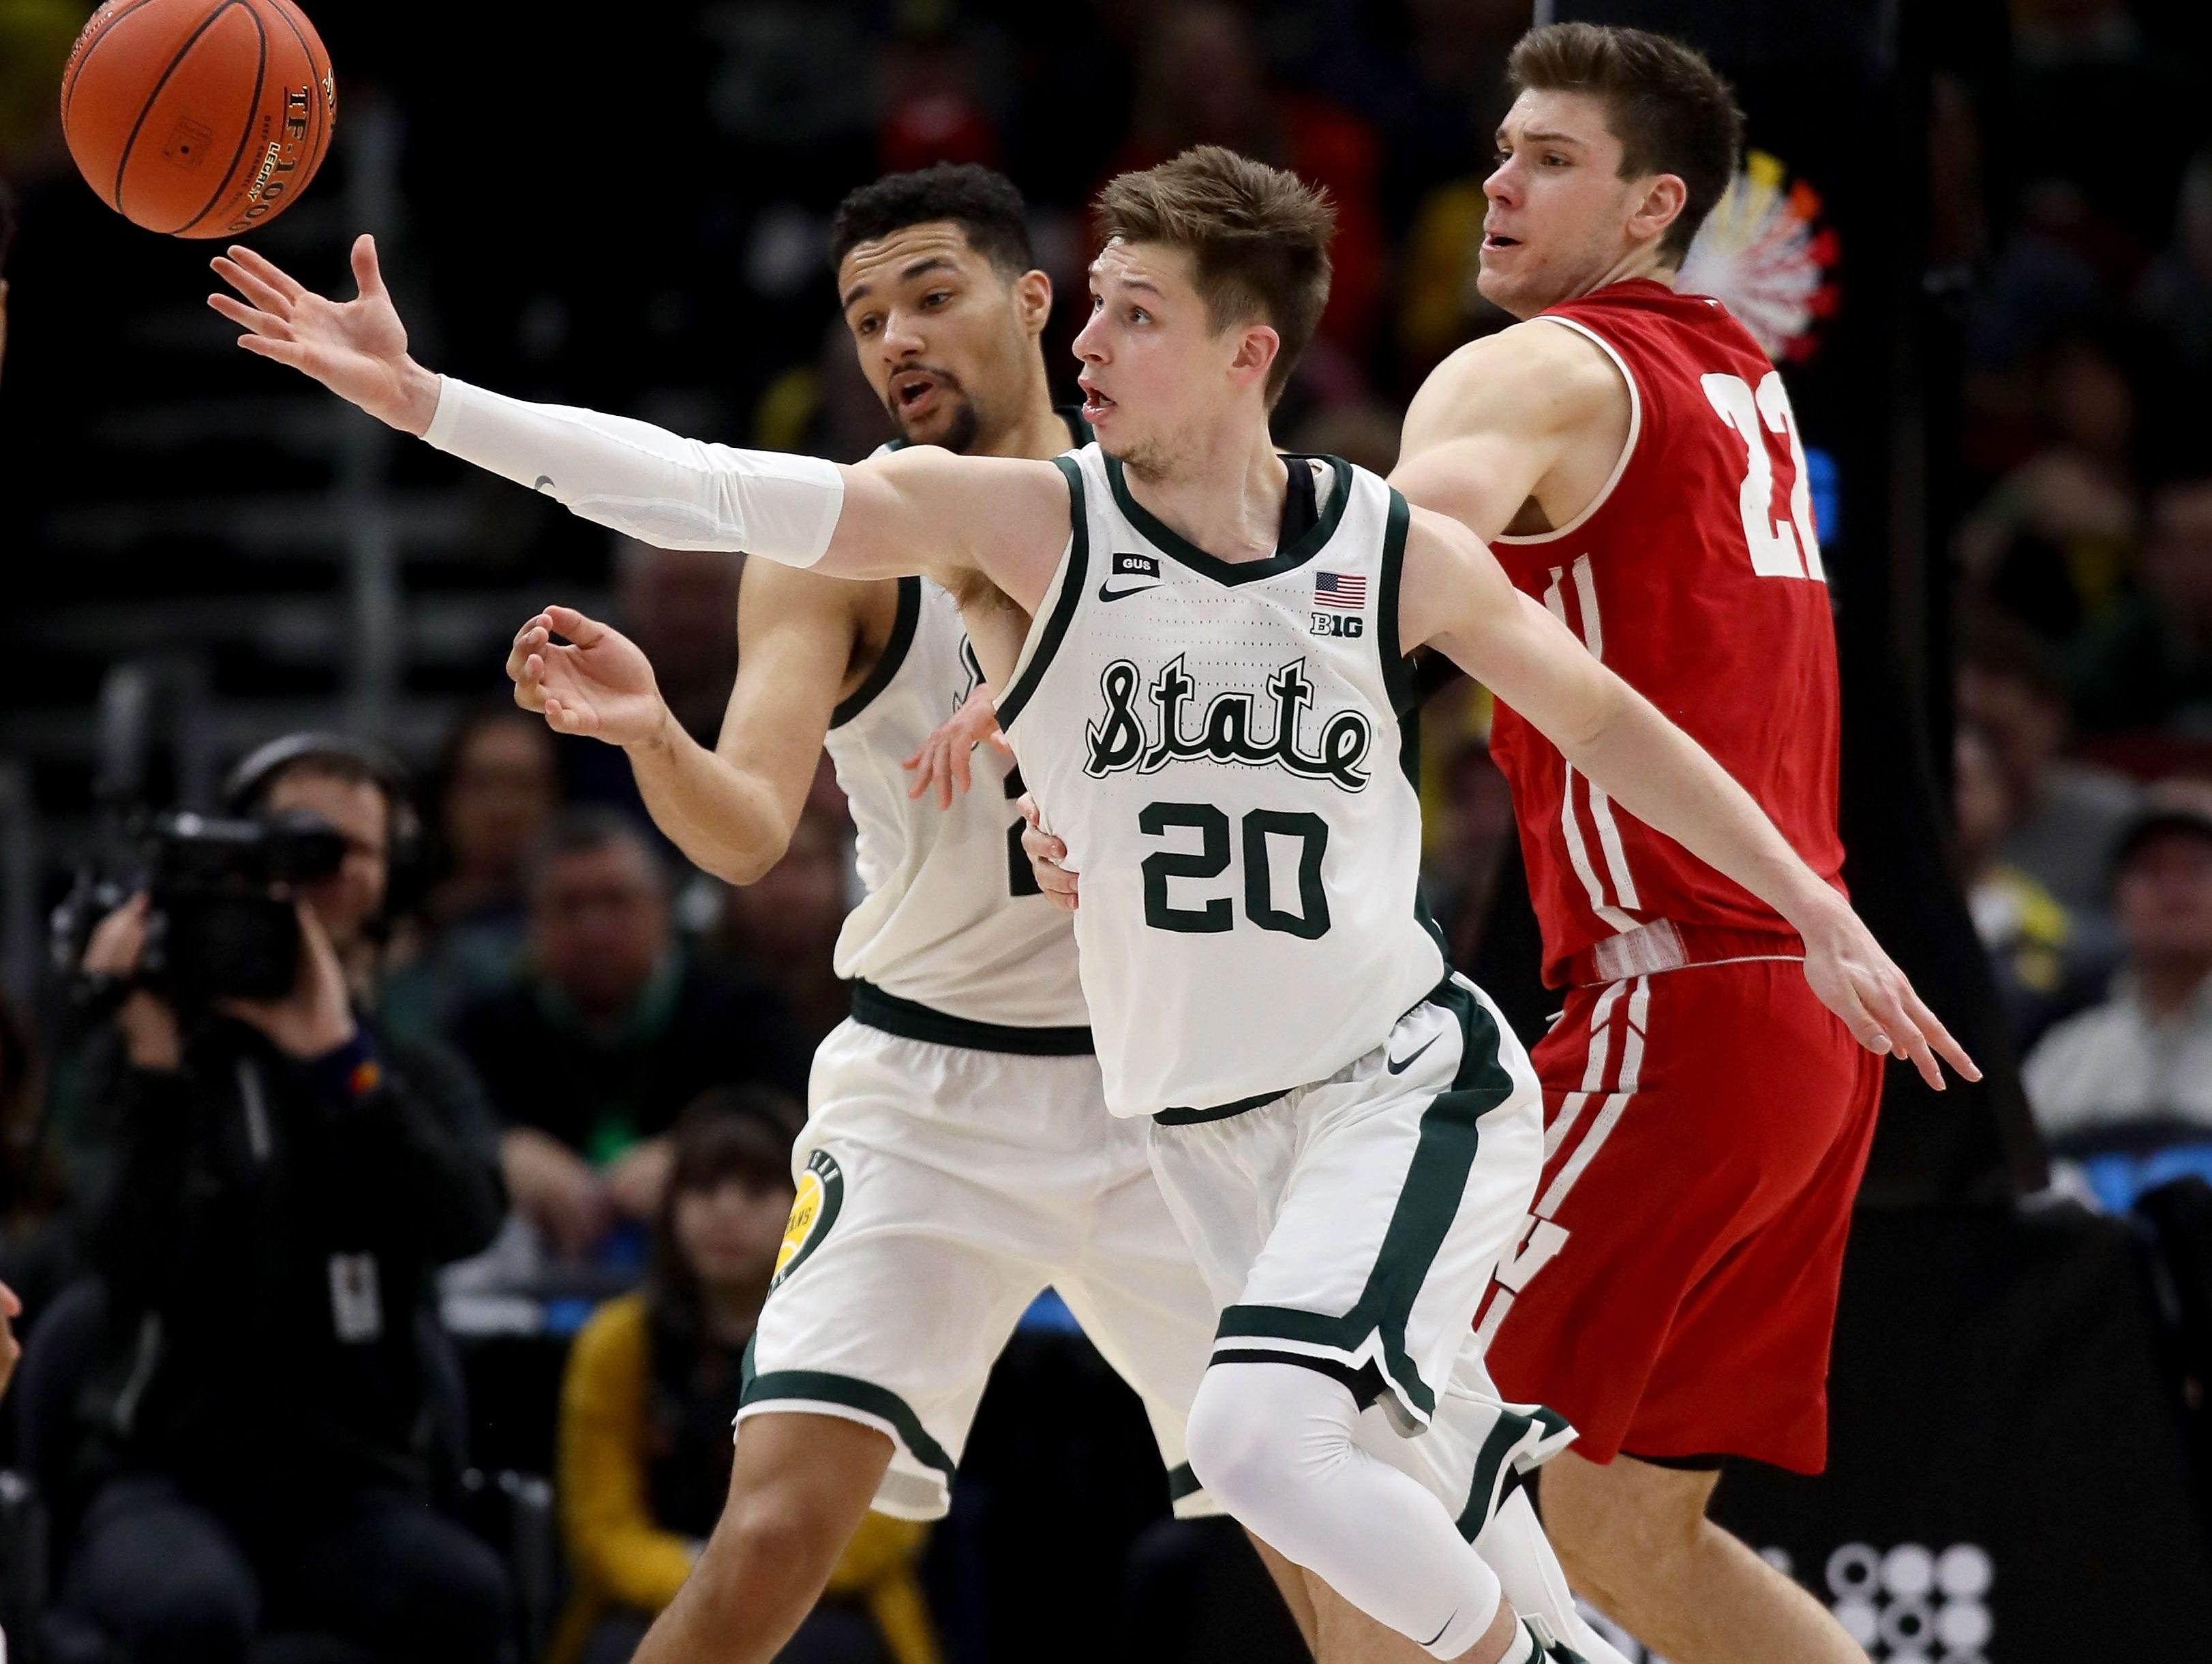 Matt McQuaid #20 of the Michigan State Spartans reaches for a loose ball in the second half against the Wisconsin Badgers during the semifinals of the Big Ten Basketball Tournament at the United Center on March 16, 2019 in Chicago, Illinois.